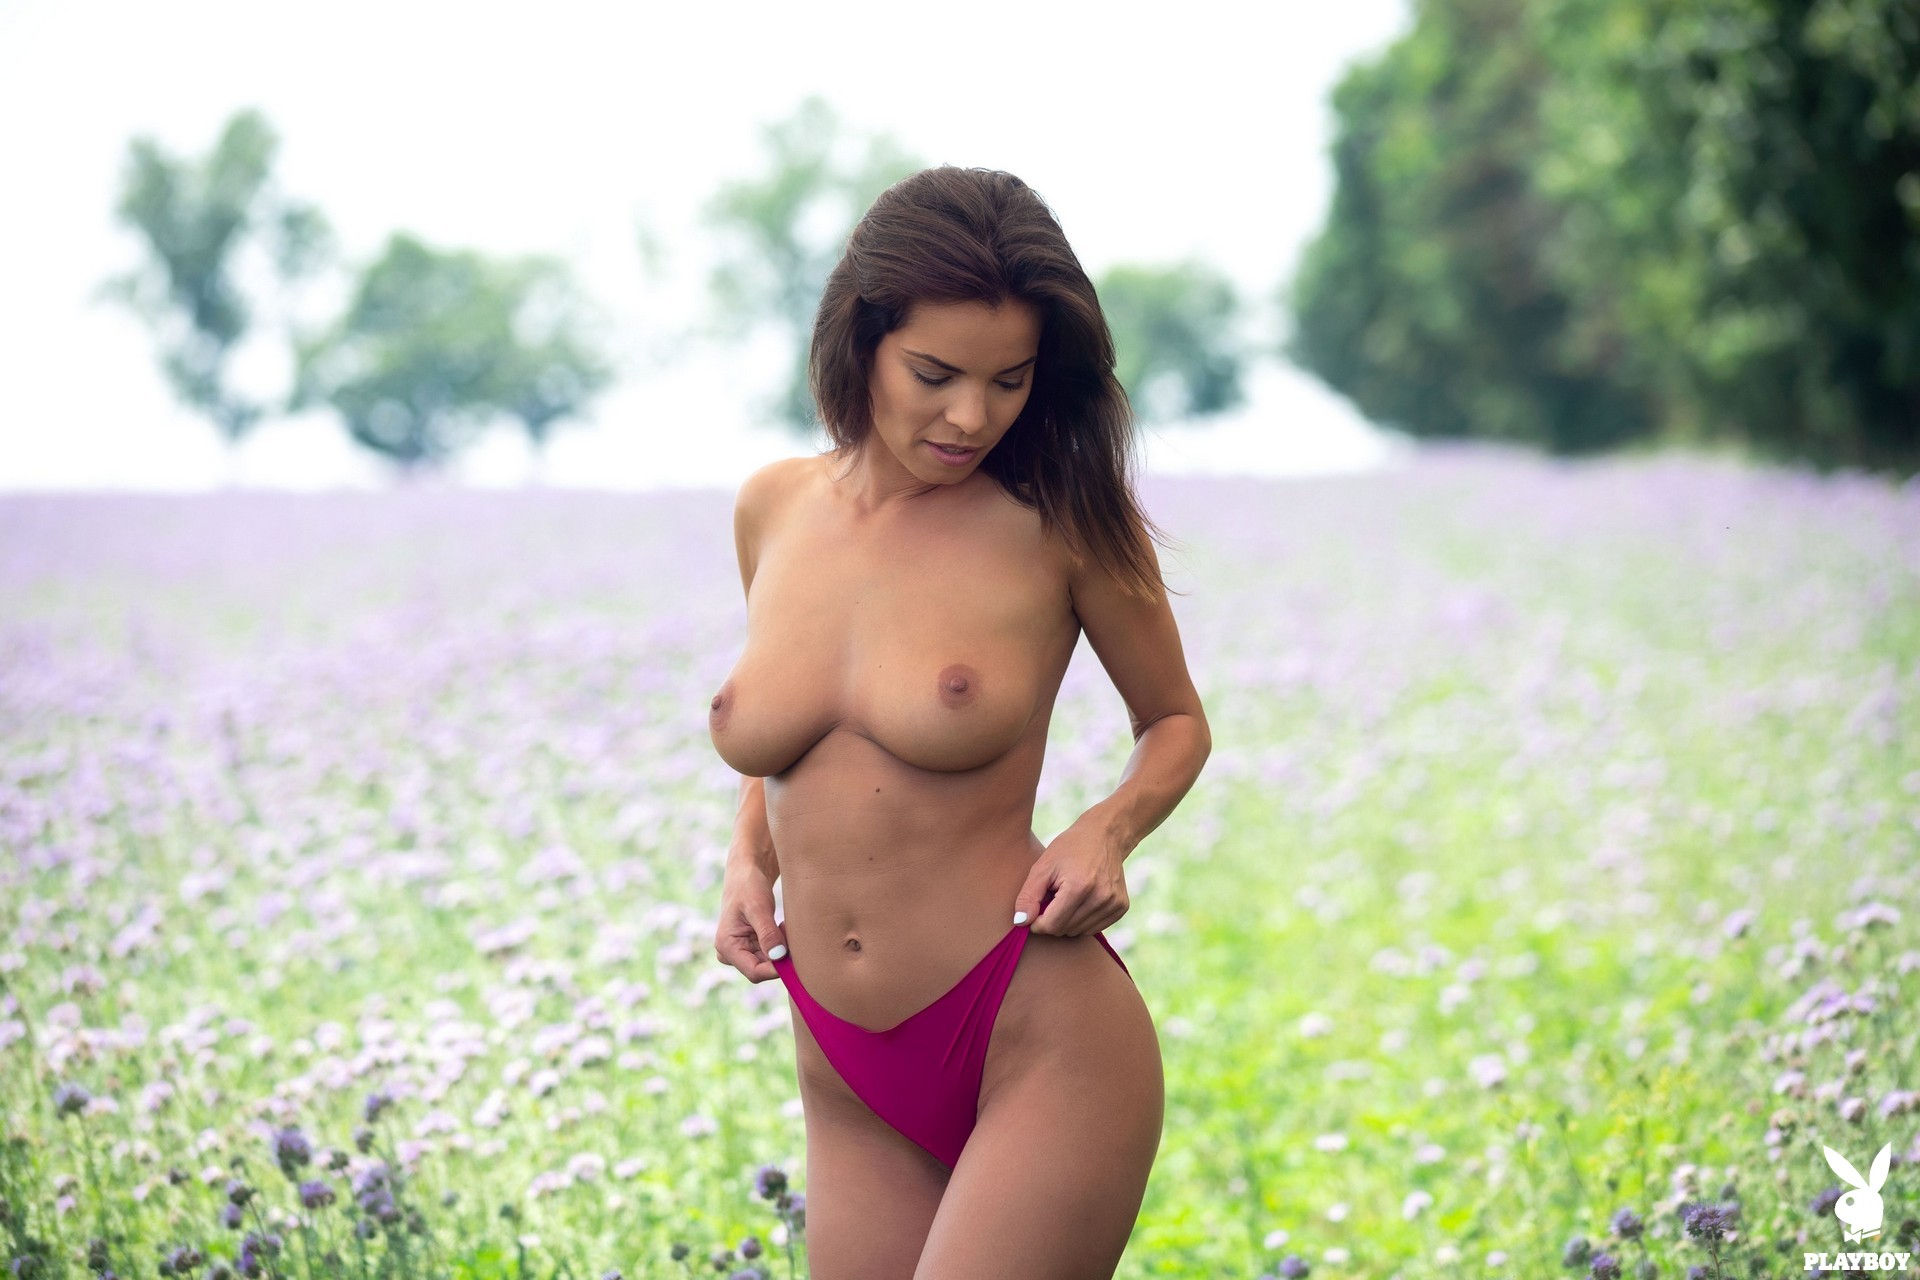 Natalie Costello in Wildly Captivating - Playboy Plus 5